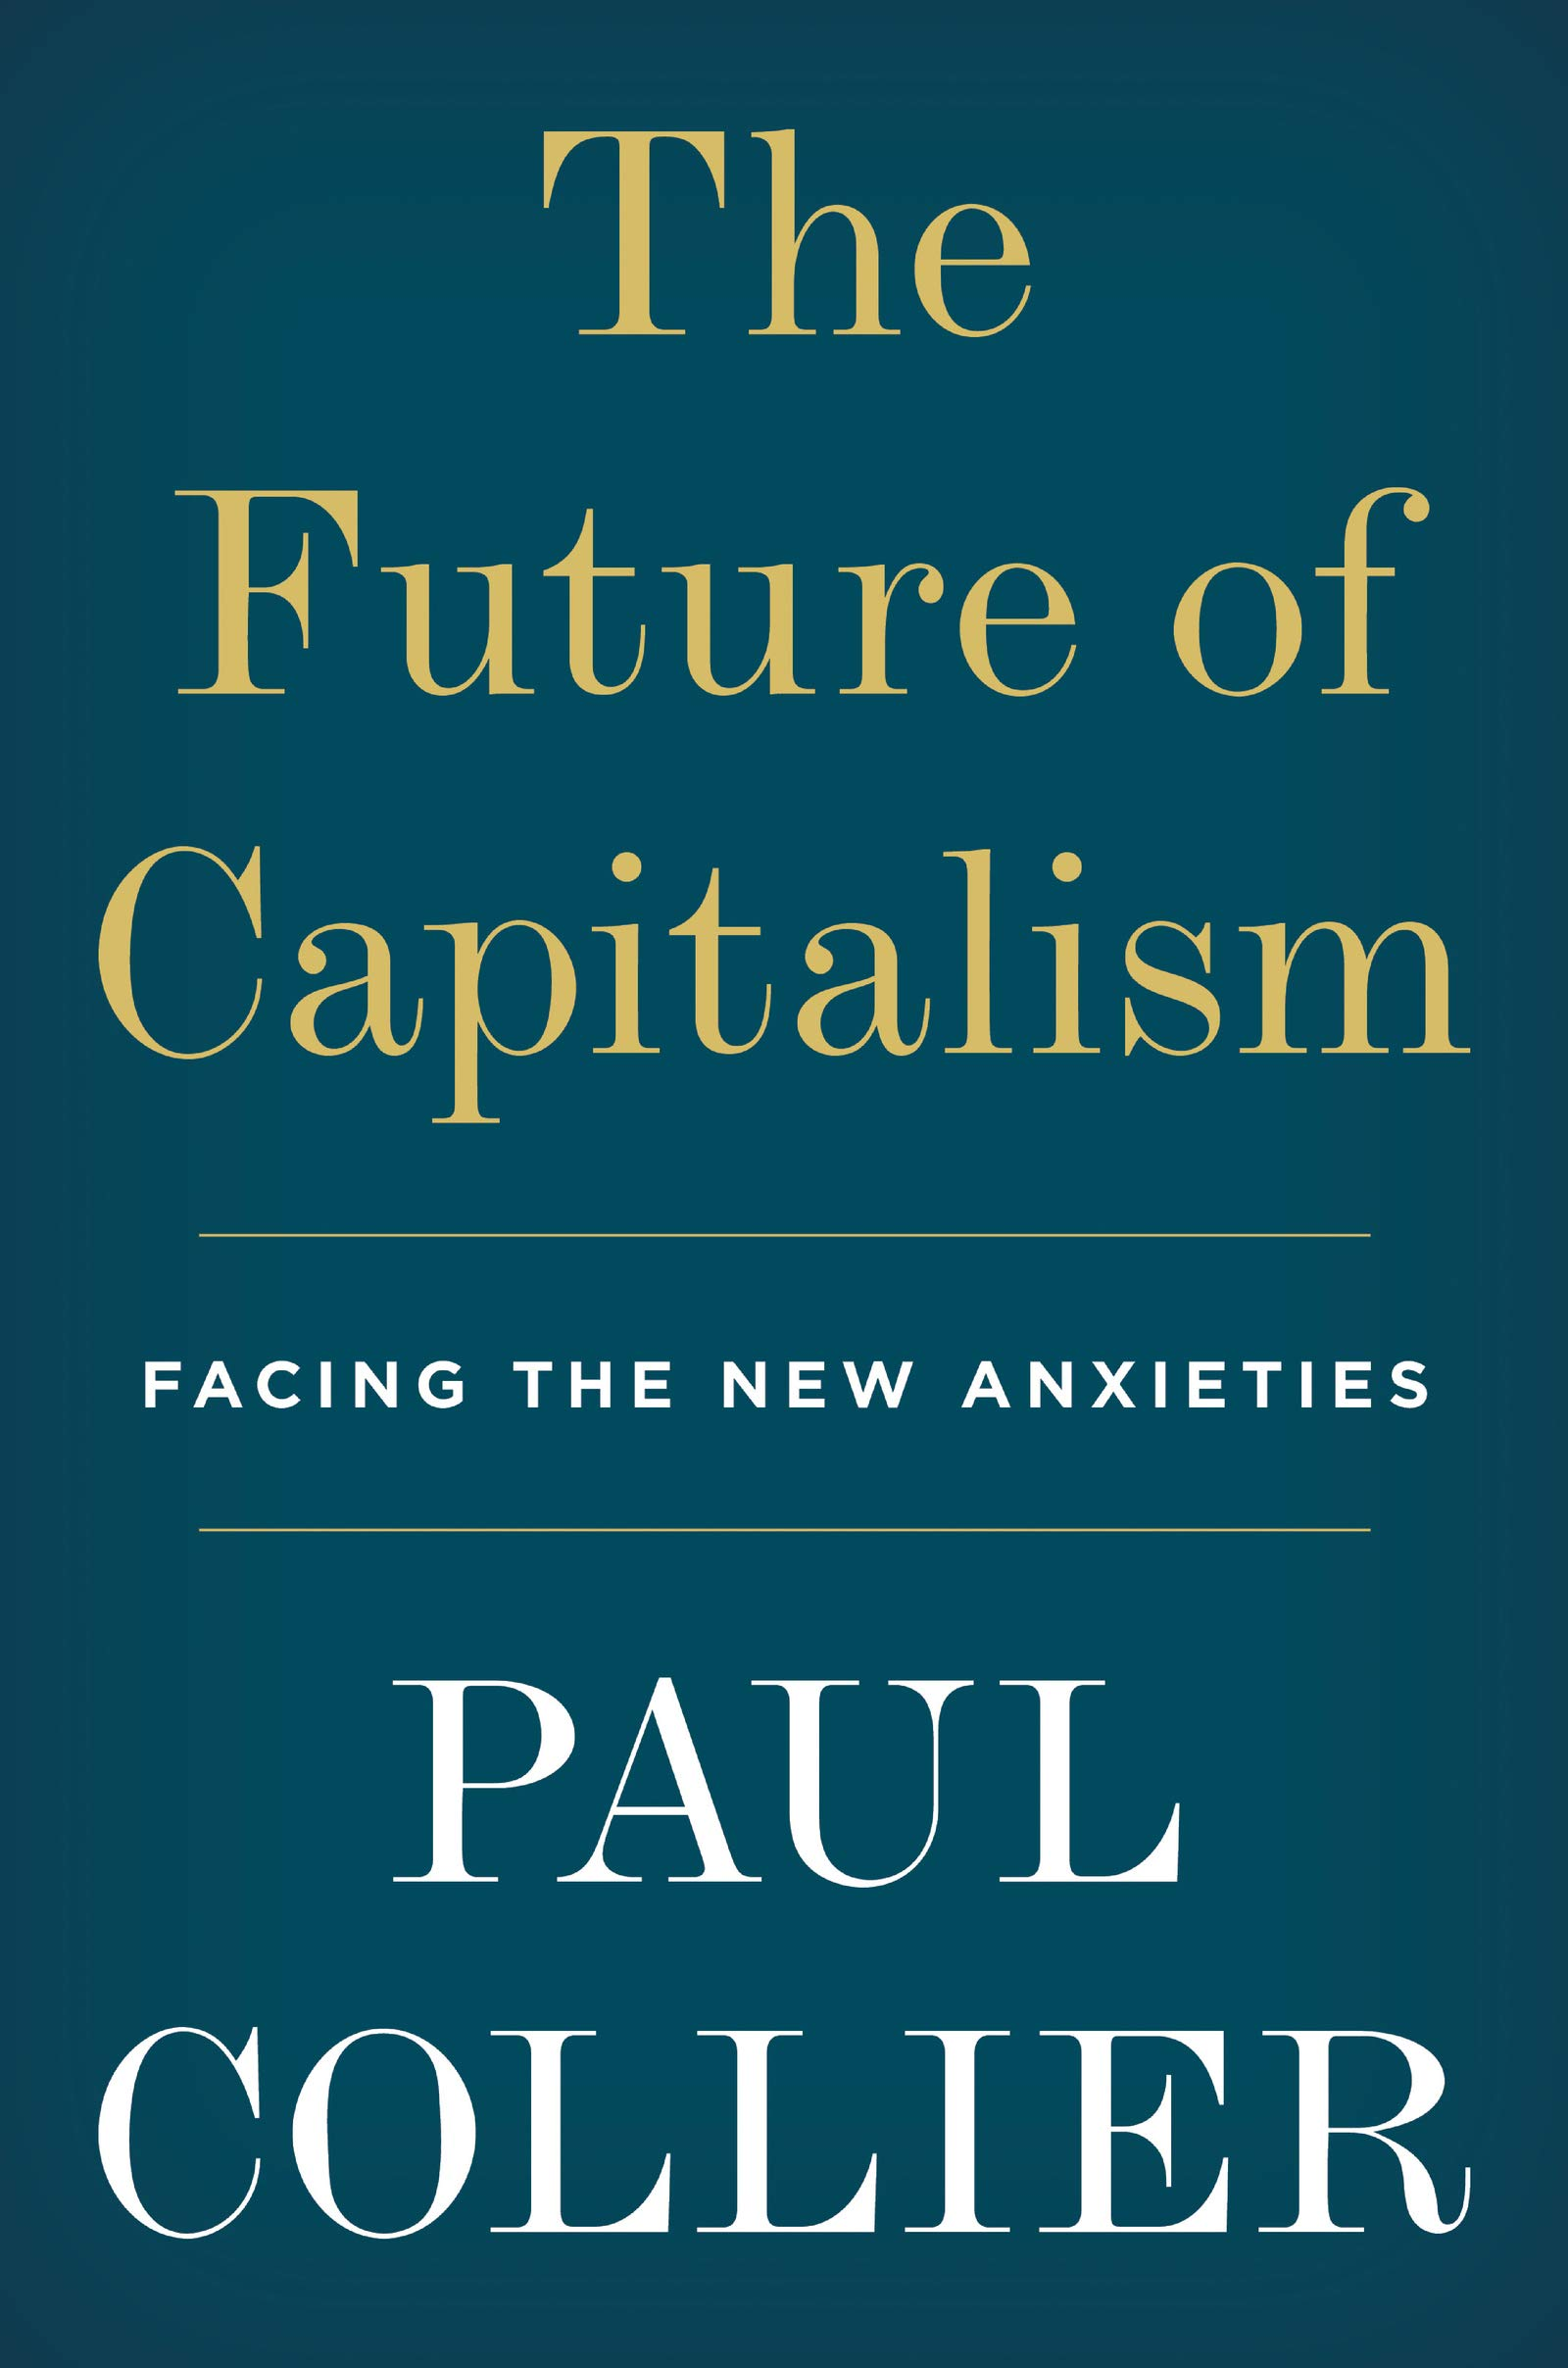 The future of capitalism : facing the new anxieties